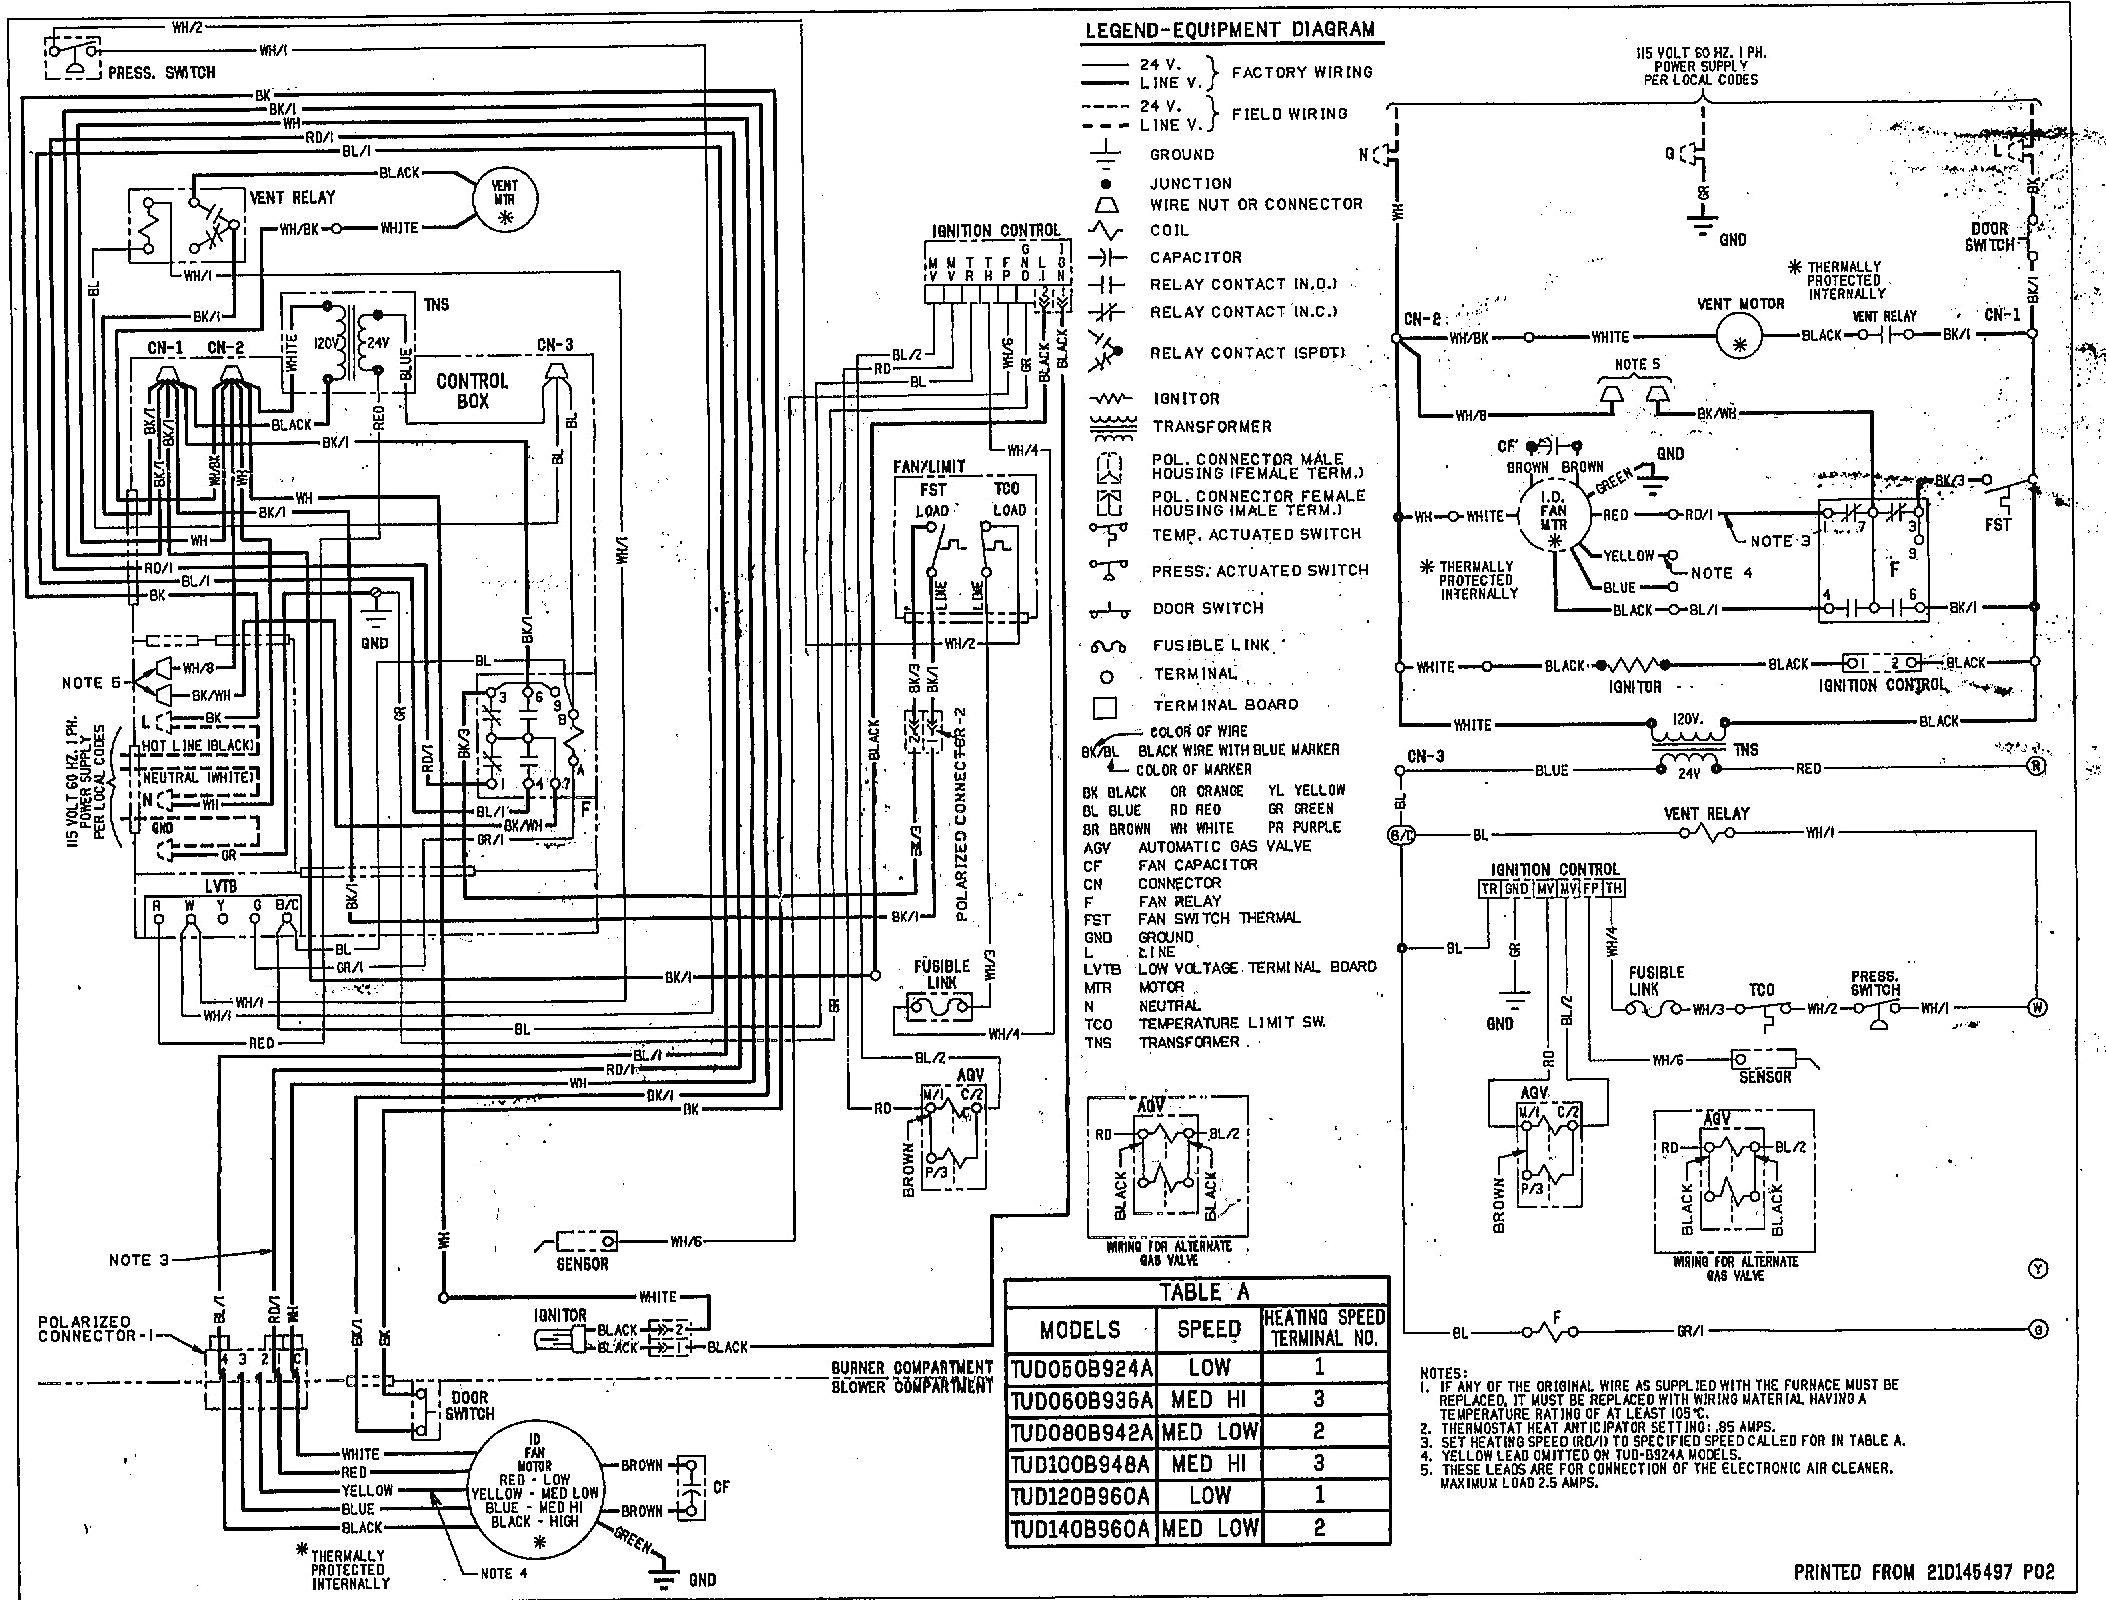 Power Flame Wiring Diagram Free For You Well Tec E116997 Third Level Rh 16 9 20 Jacobwinterstein Com Autoloc Diagrams